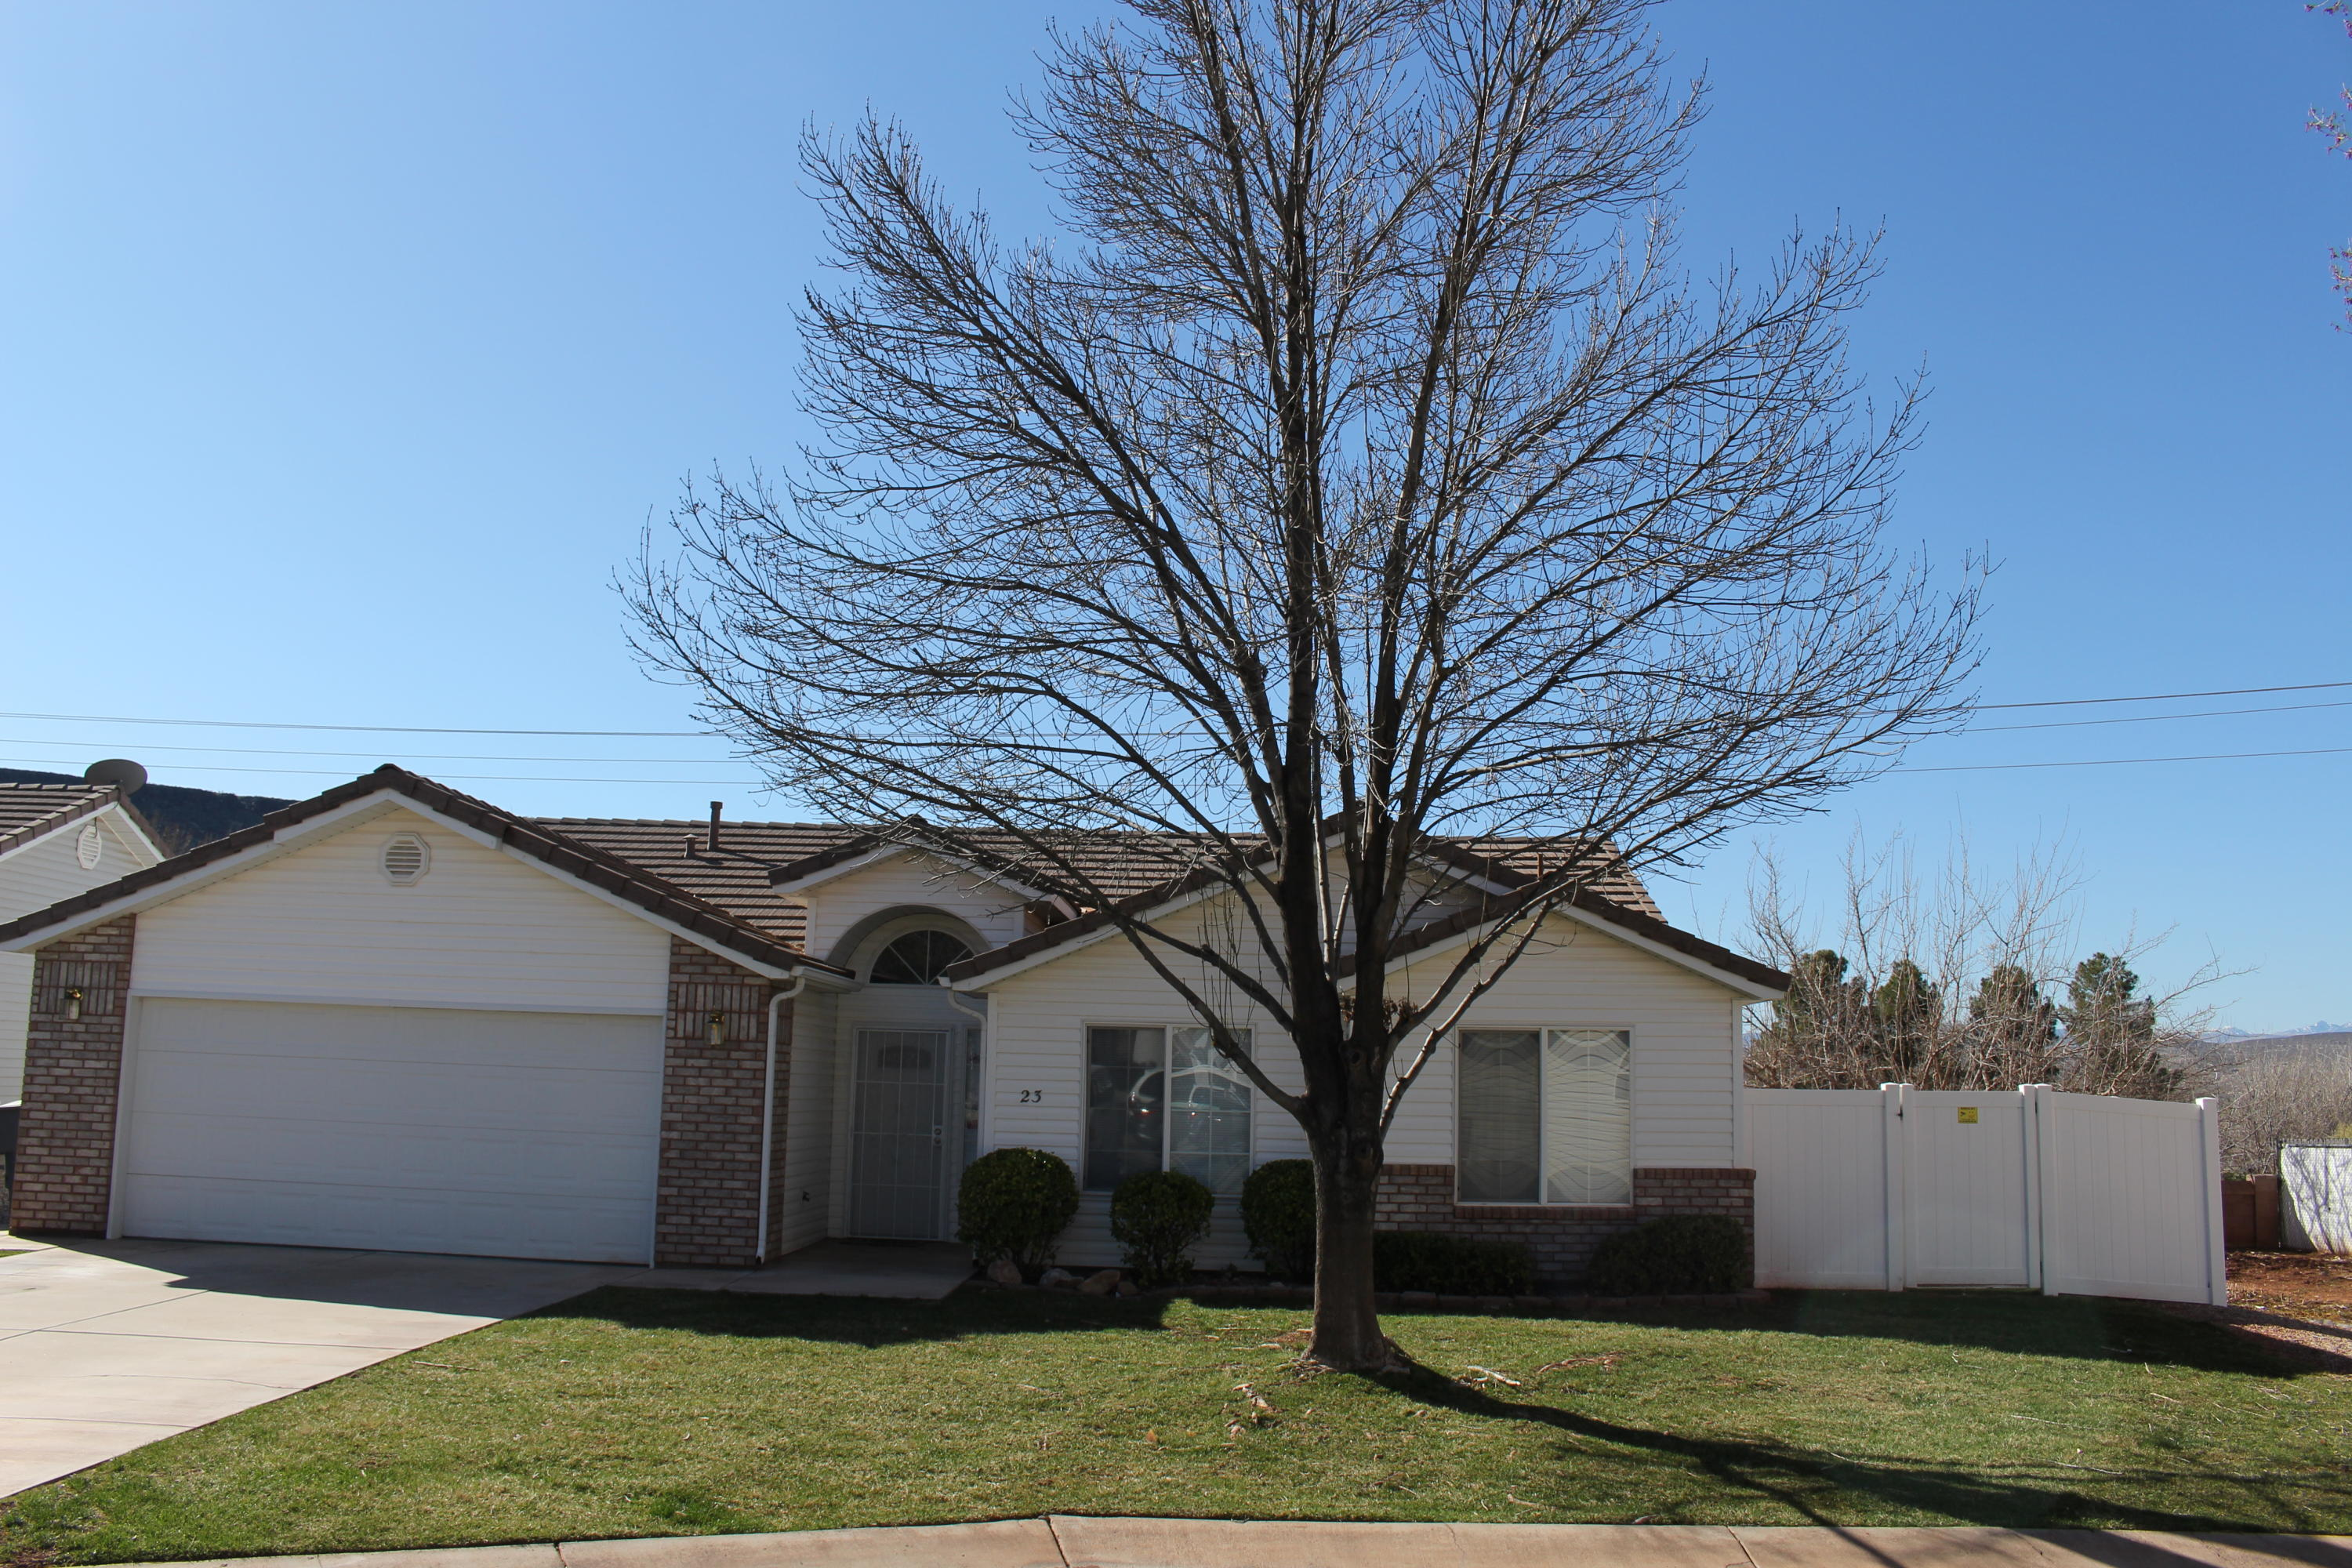 1141 W 360 N Unit 23, St George Ut 84770